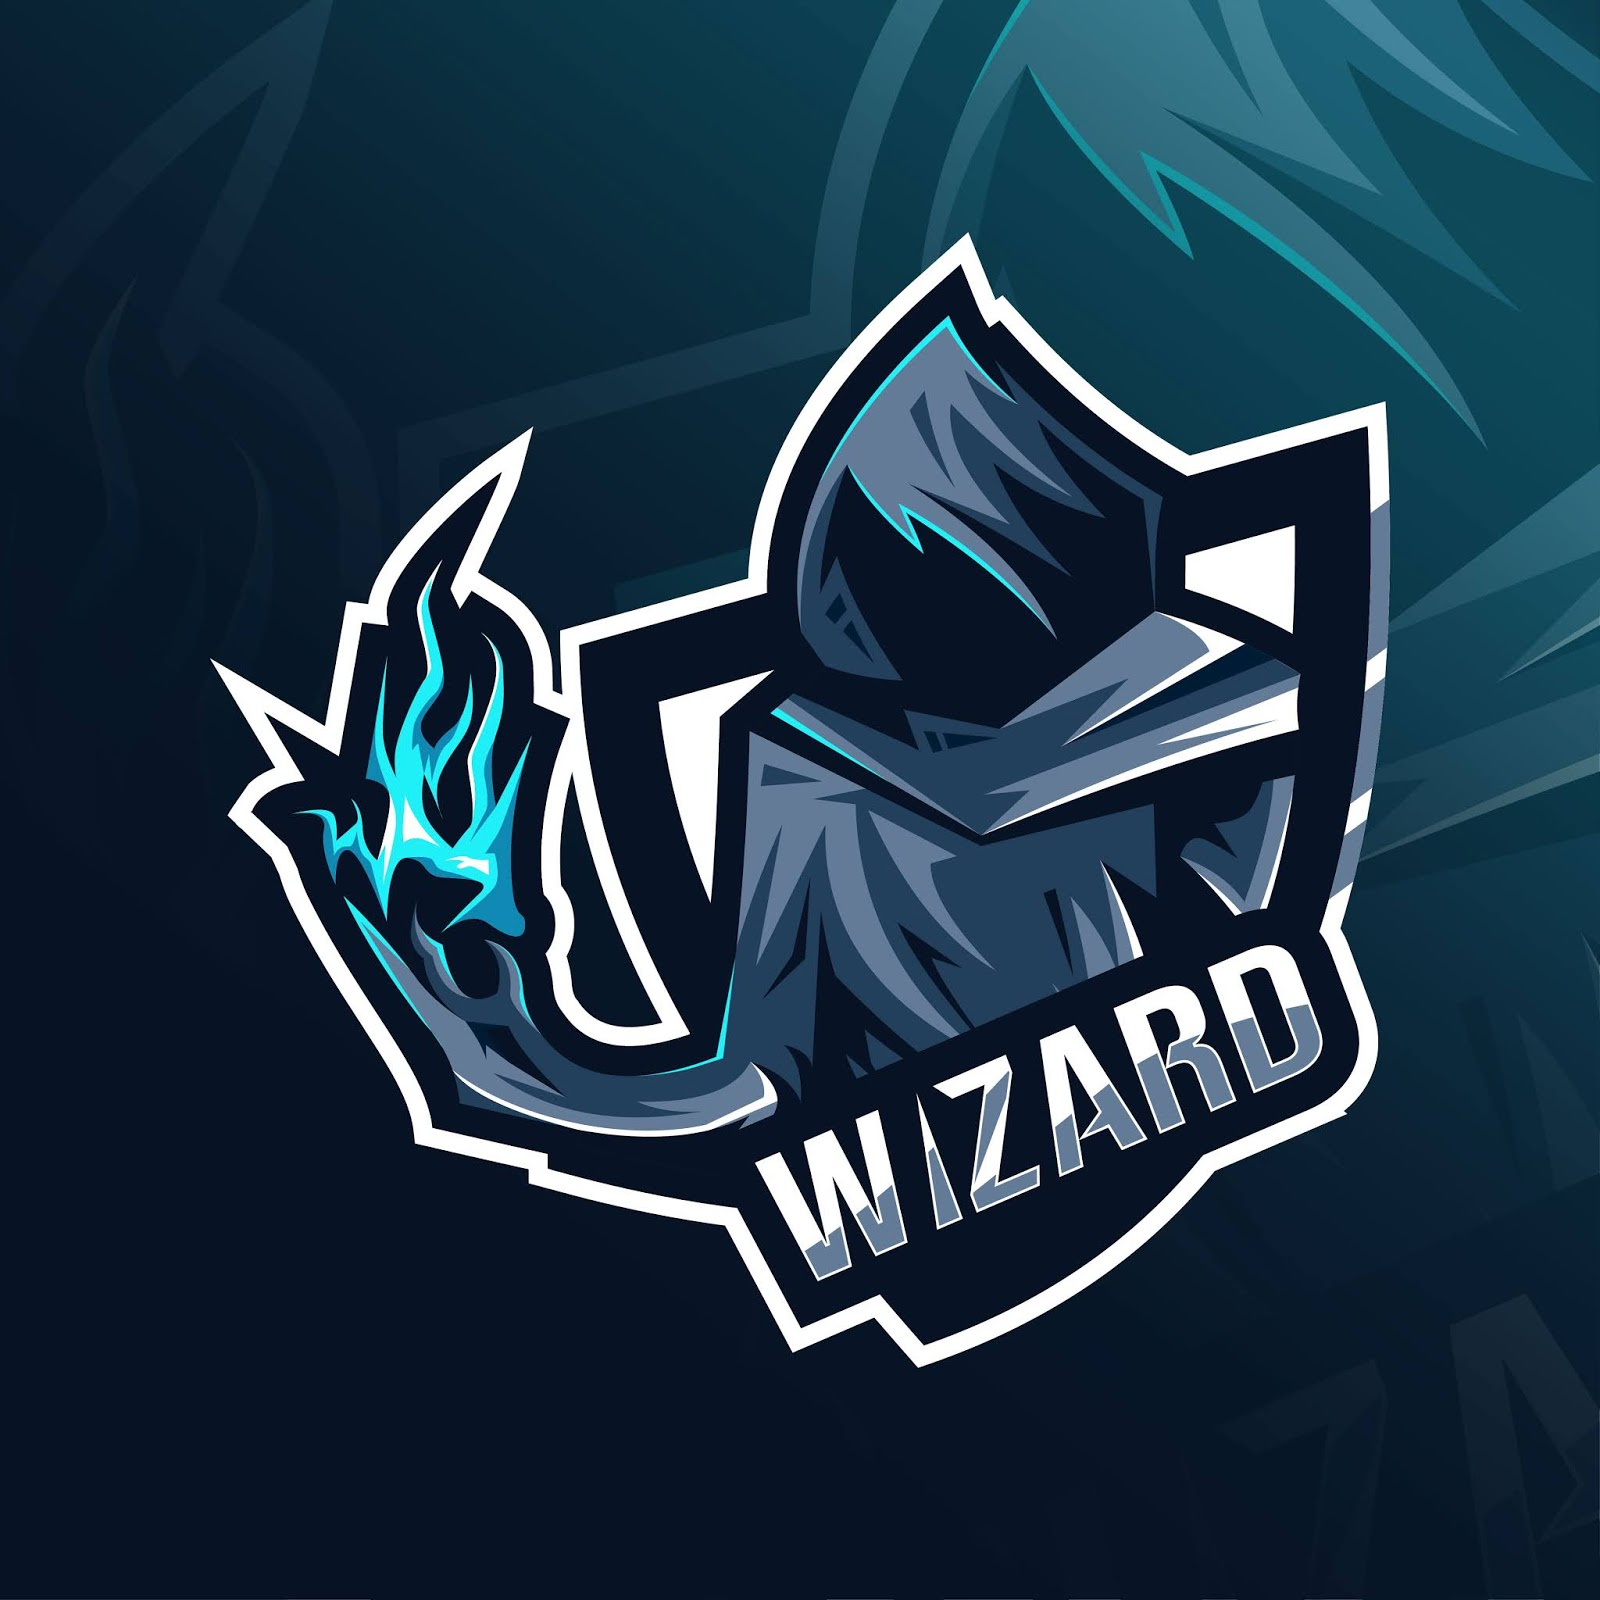 Wizard Mascot Logo Esport Template Free Download Vector CDR, AI, EPS and PNG Formats